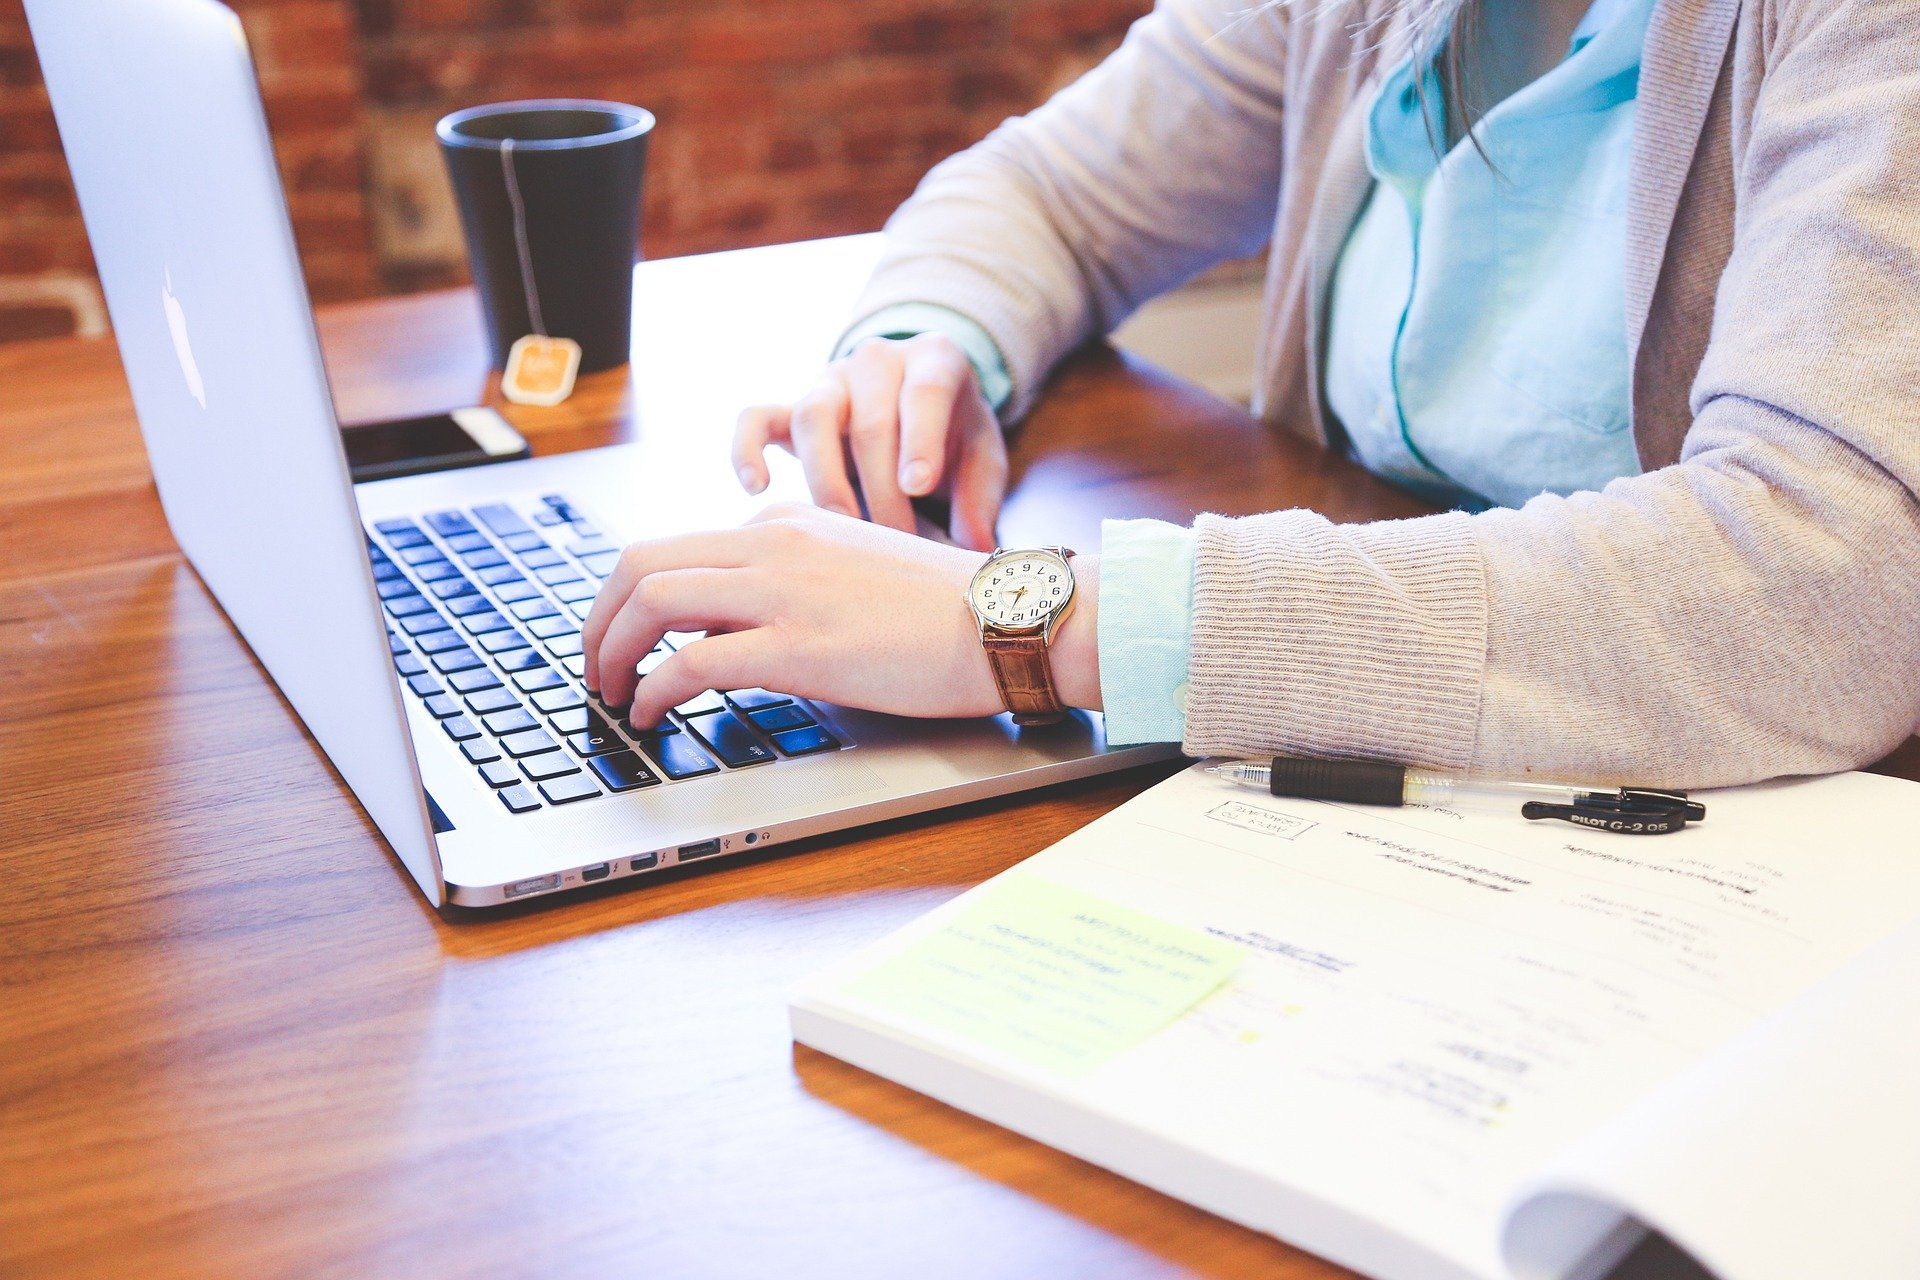 I will write articles for your blog or website